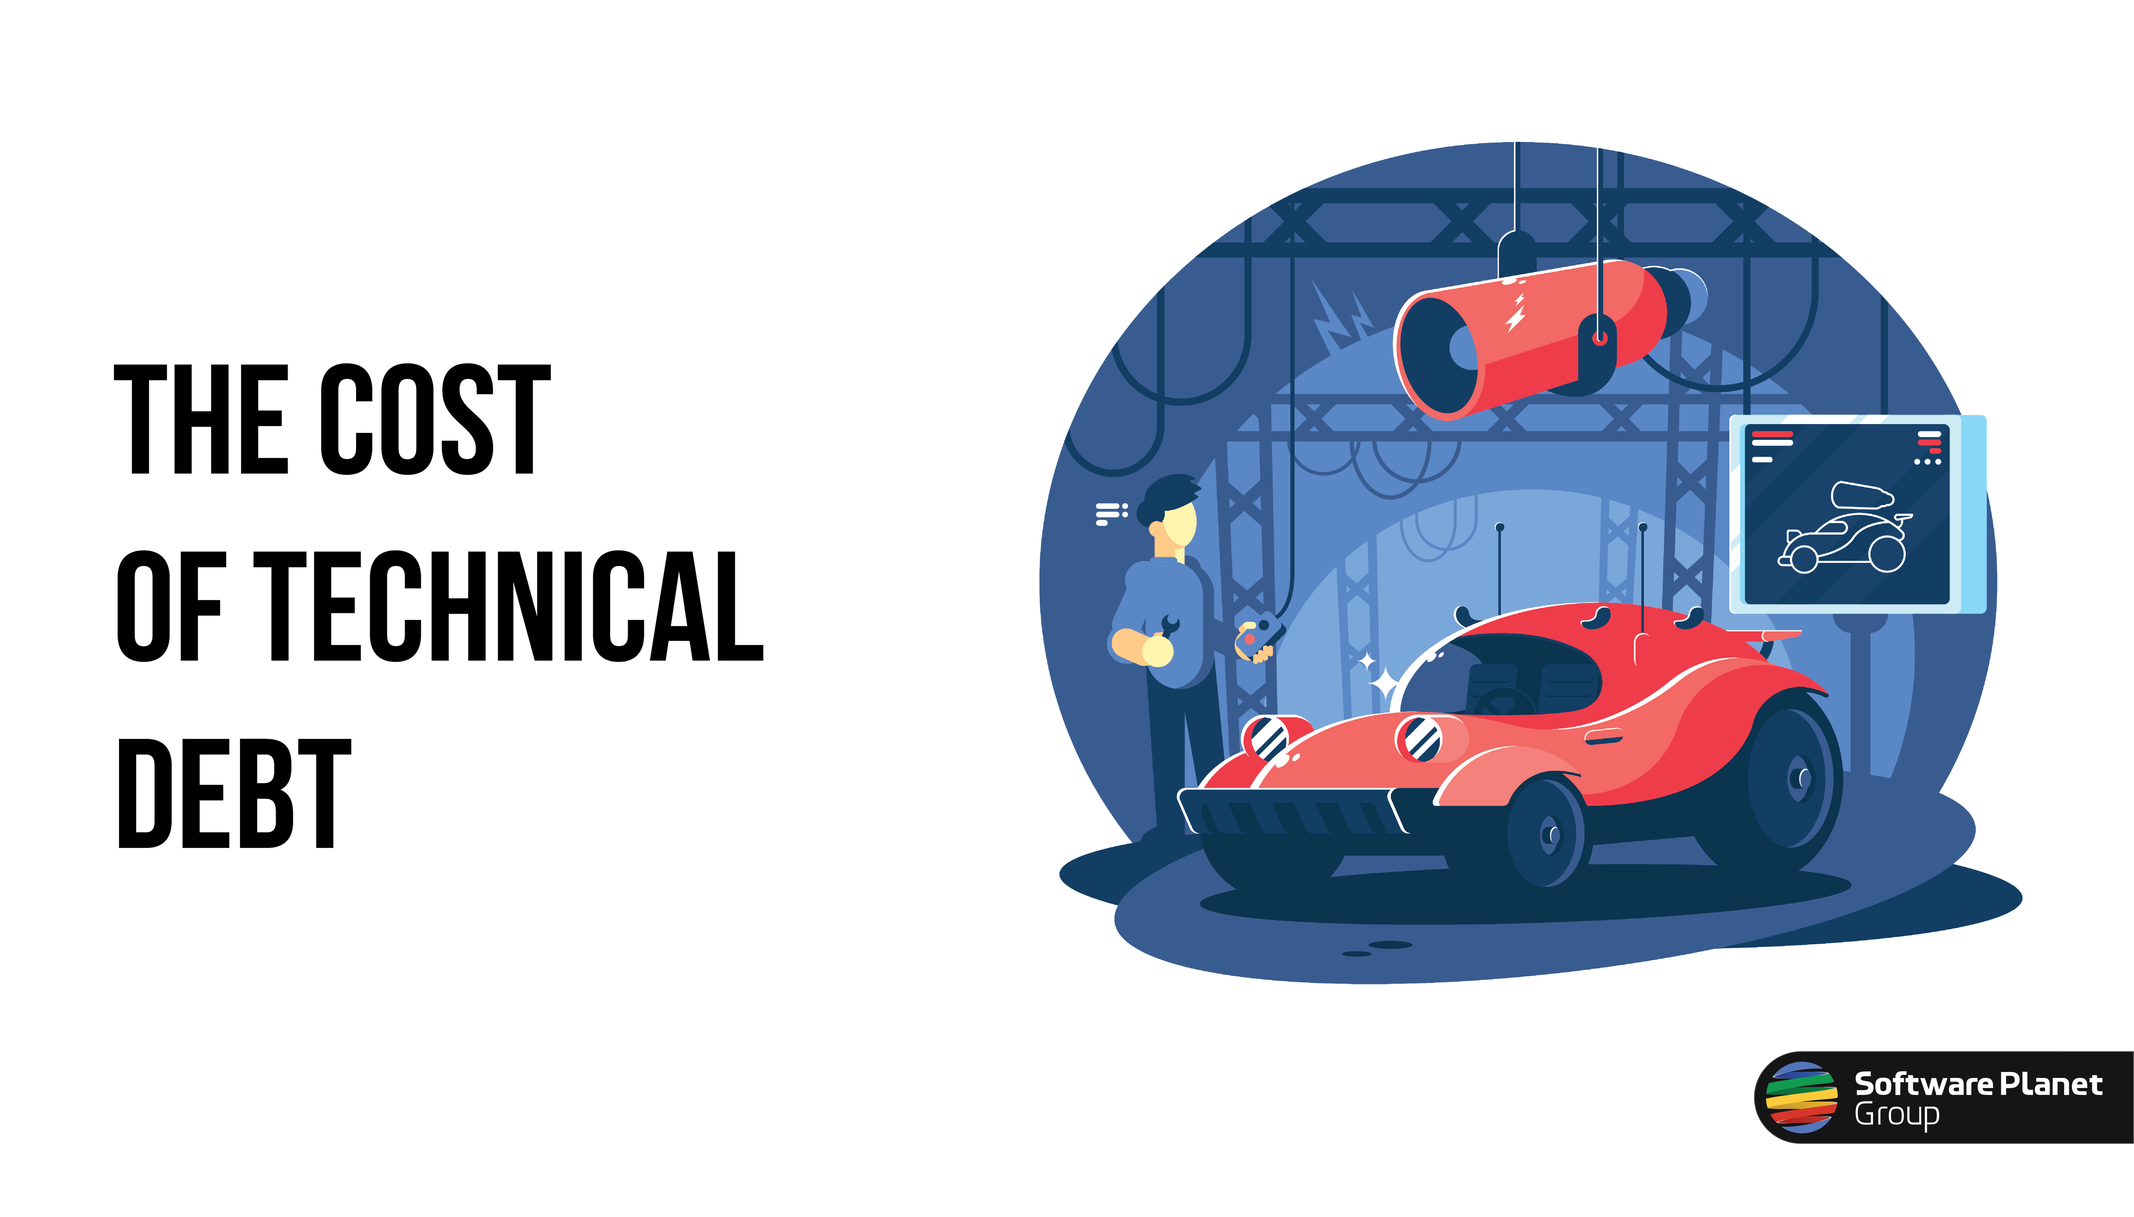 The Cost of Technical Debt